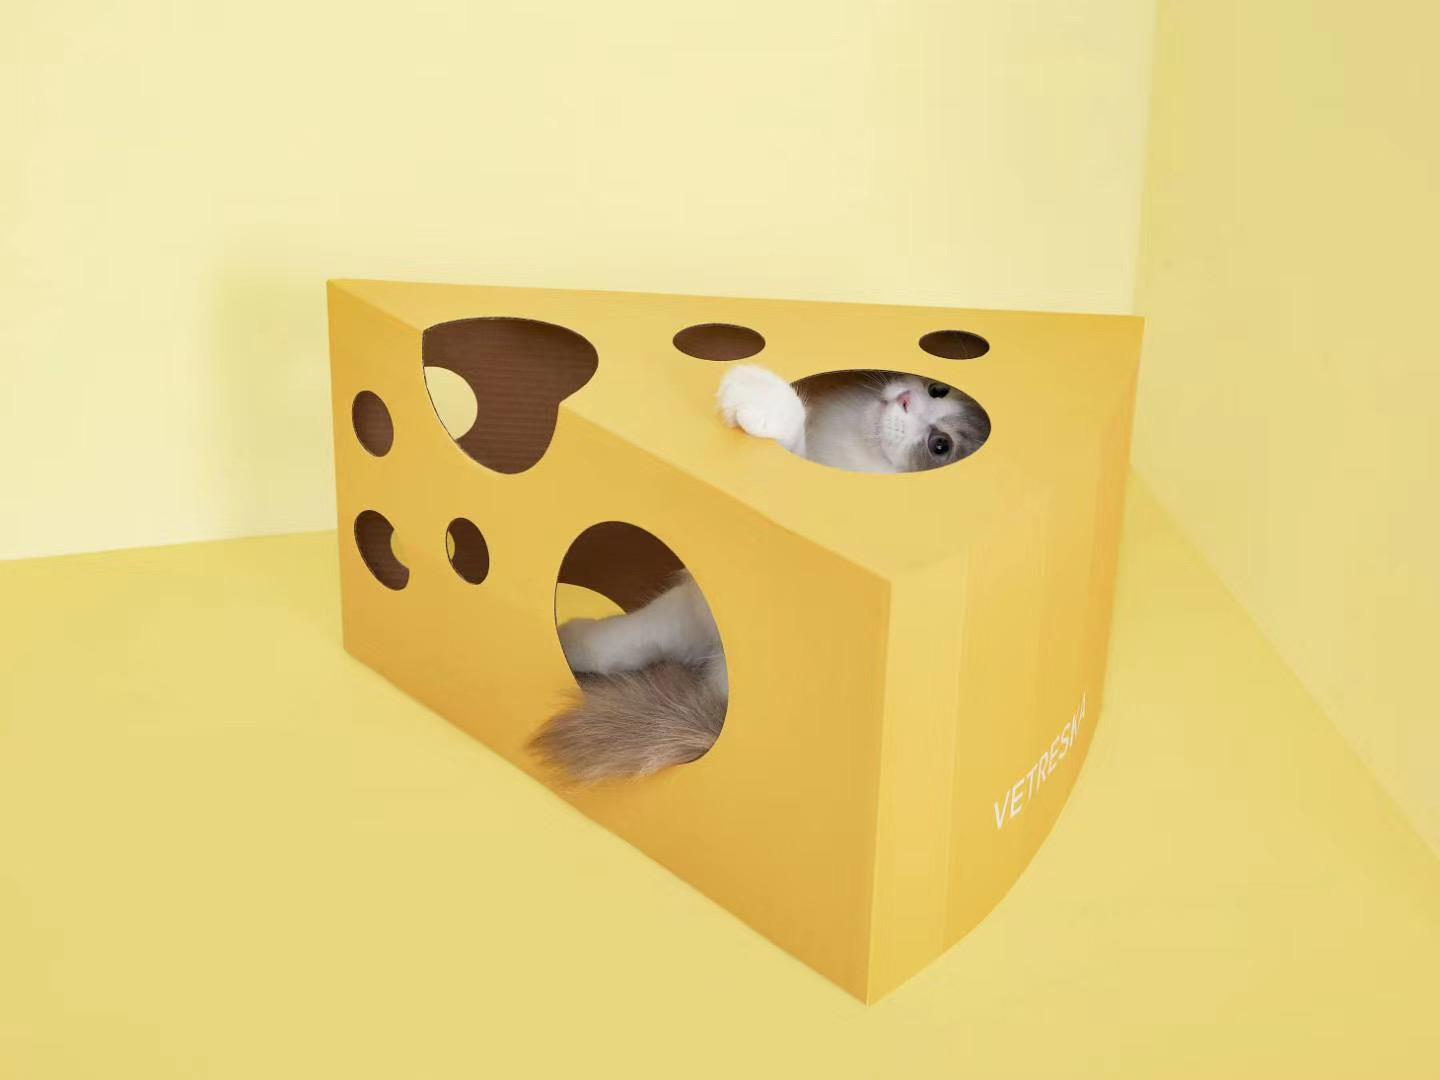 Vetreska Cheese Cat Scratcher Box - Catoro Cat Cafe